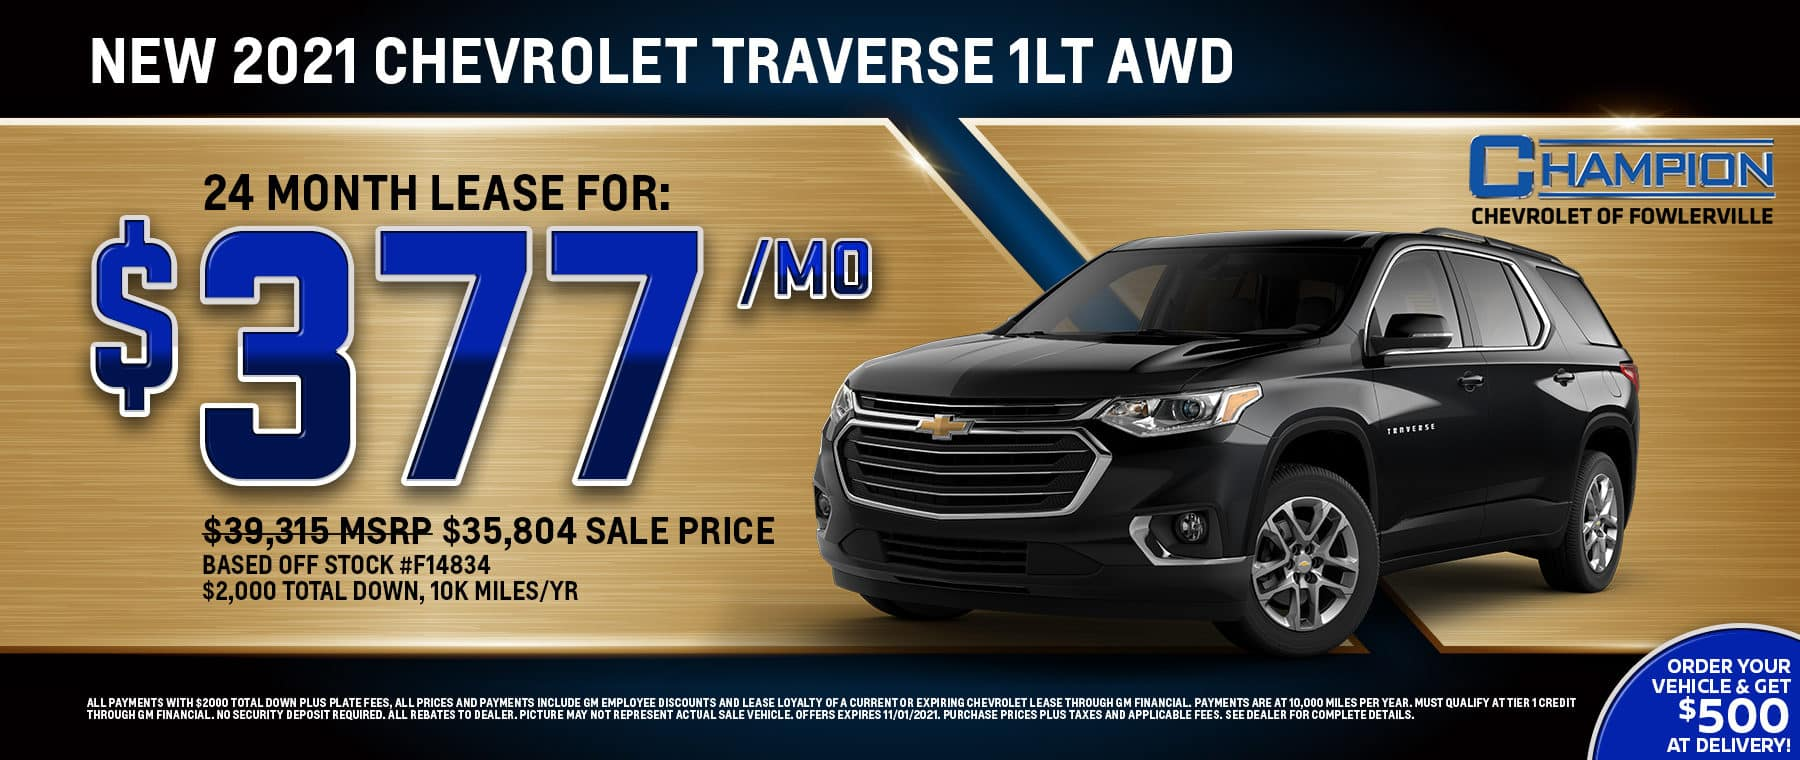 10_21_Champion_Fowlerville_Chevy_1800x760_2021_Traverse_1LT_web_banners